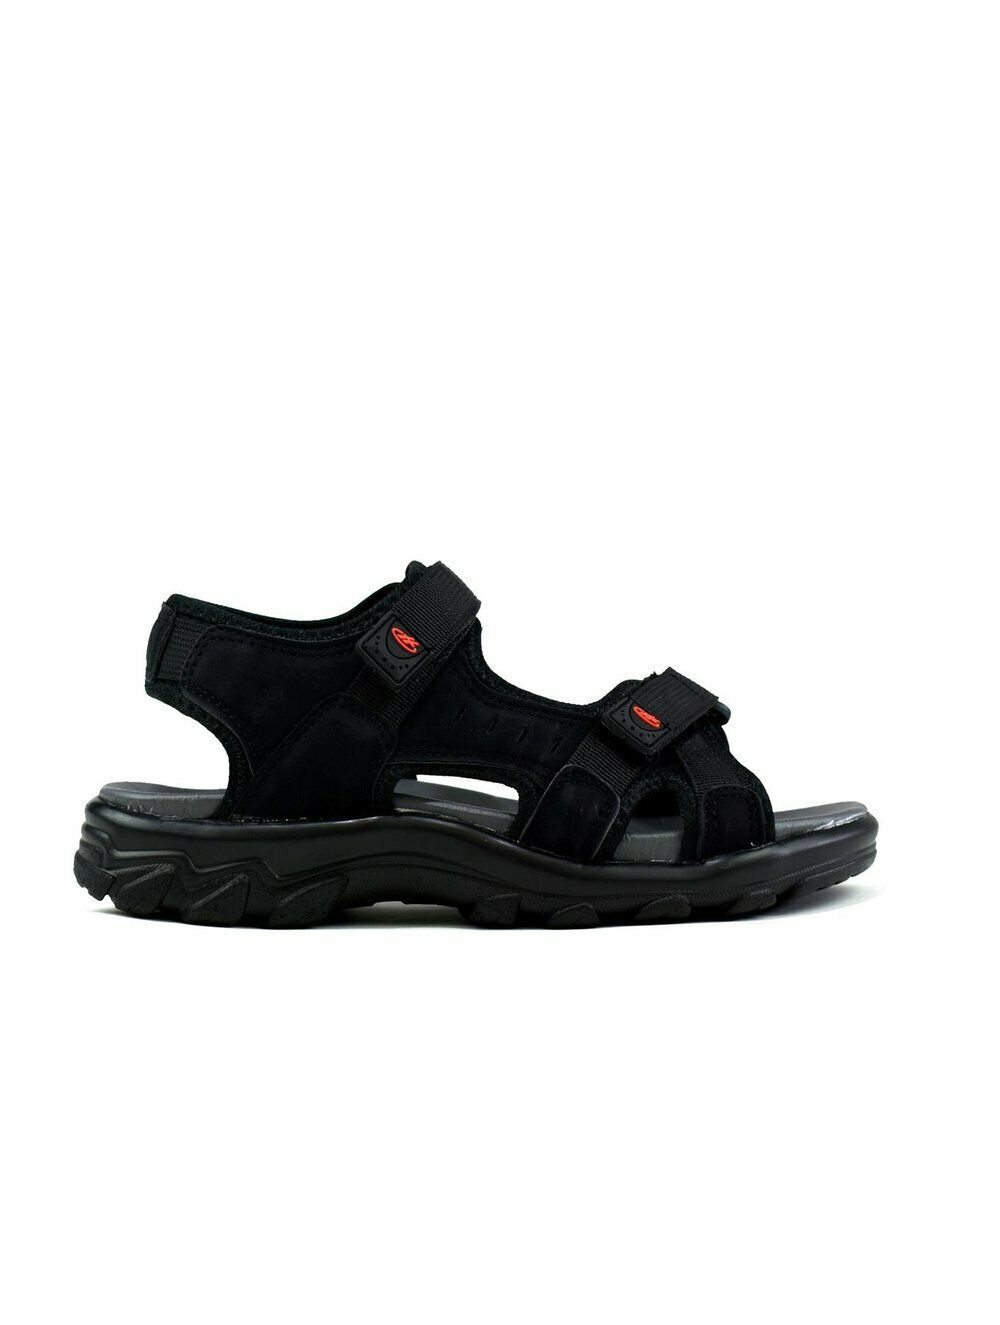 Airfoot Comfort Men's Comfy Double Strap Easy Fasten Summer Outdoor Sandals Blac